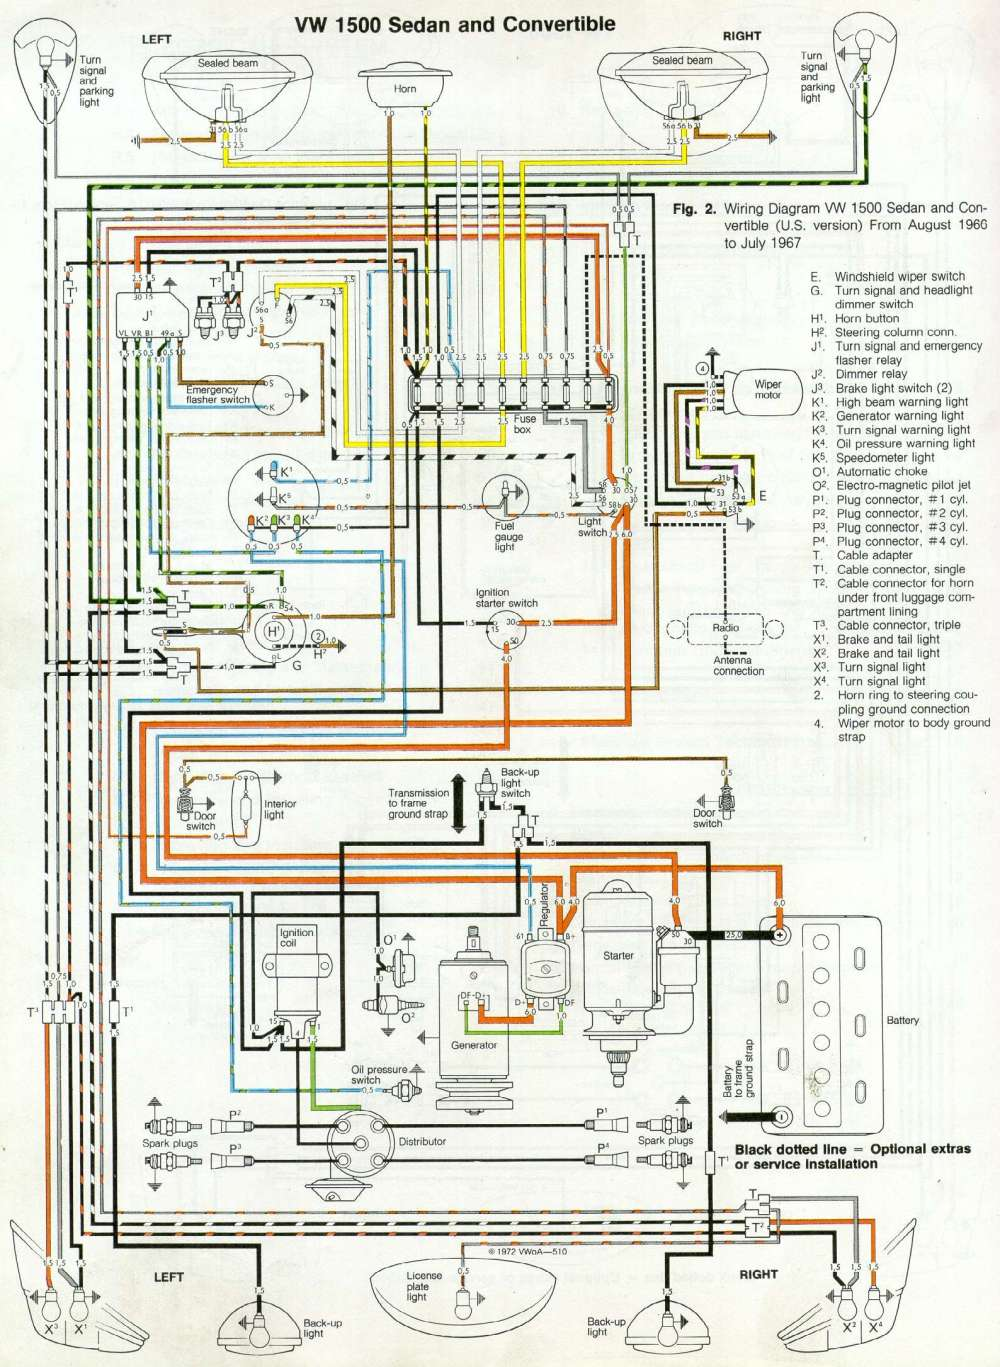 medium resolution of thesamba com type 1 wiring diagrams wiring diagram for 1970 vw beetle wiring diagram for 1970 vw bug